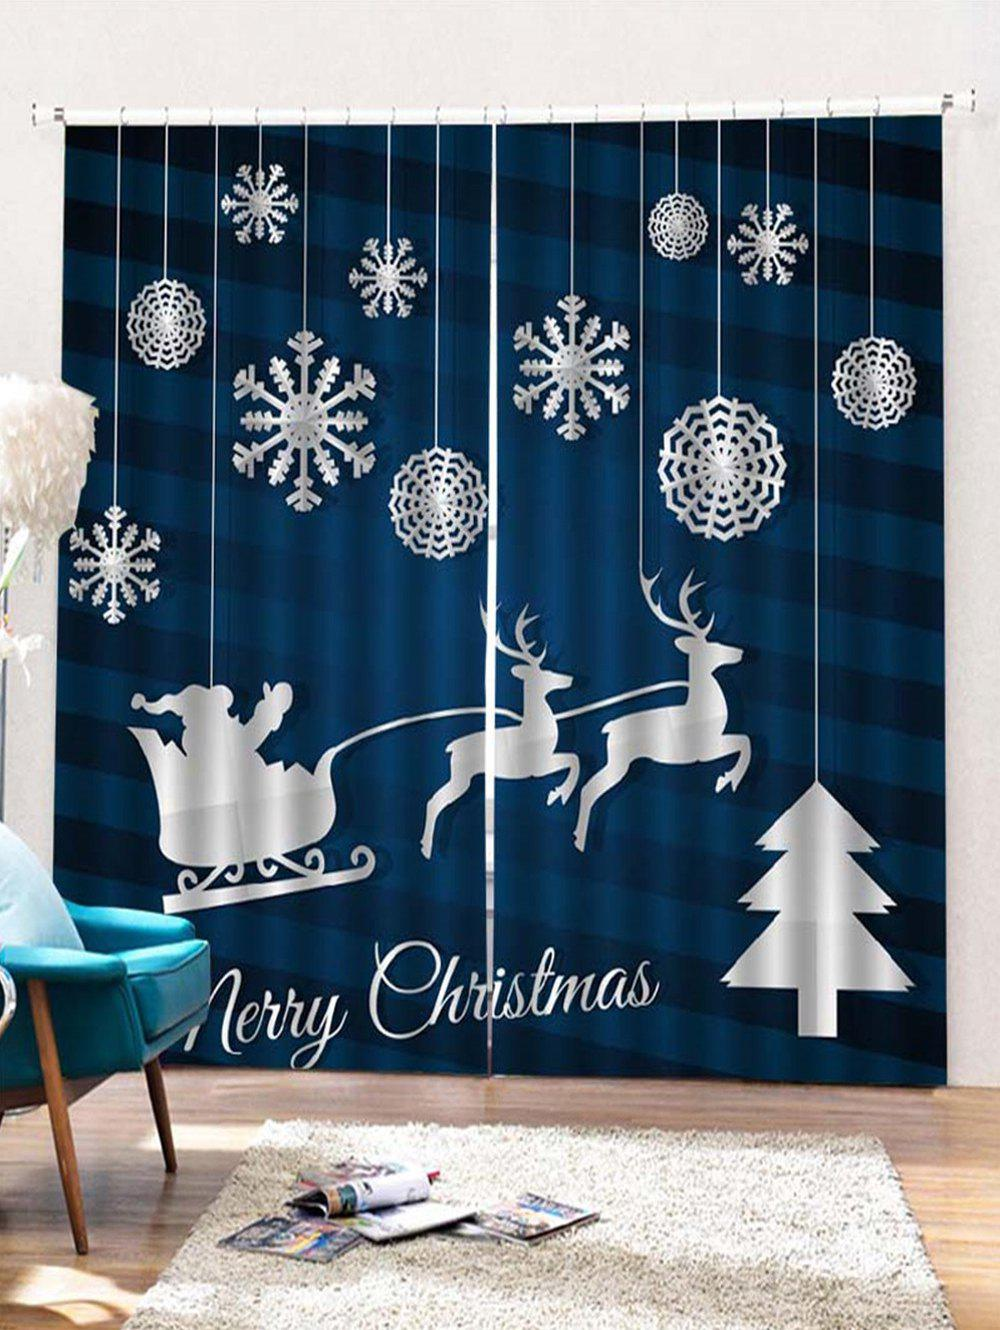 2PCS Merry Christmas Snowflake Deer Pattern Window Curtains - PEACOCK BLUE W28 X L39 INCH X 2PCS